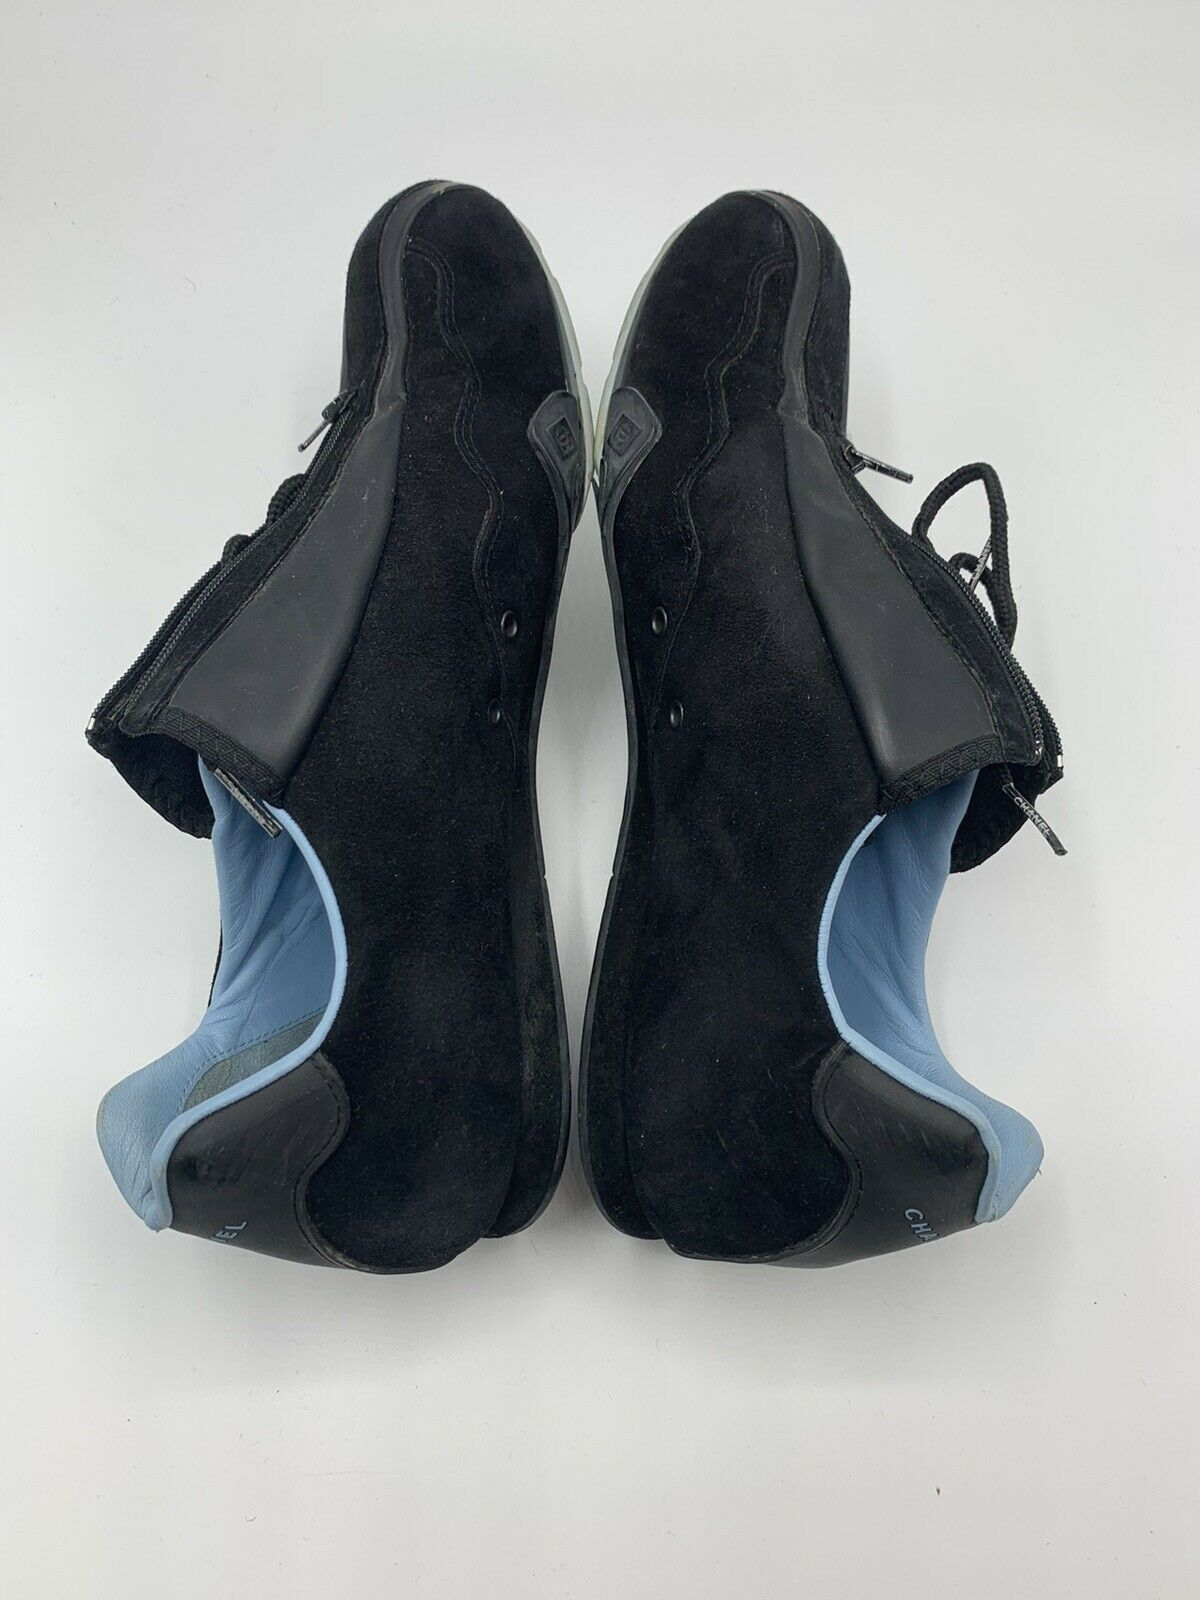 Chanel Sneakers - image 2